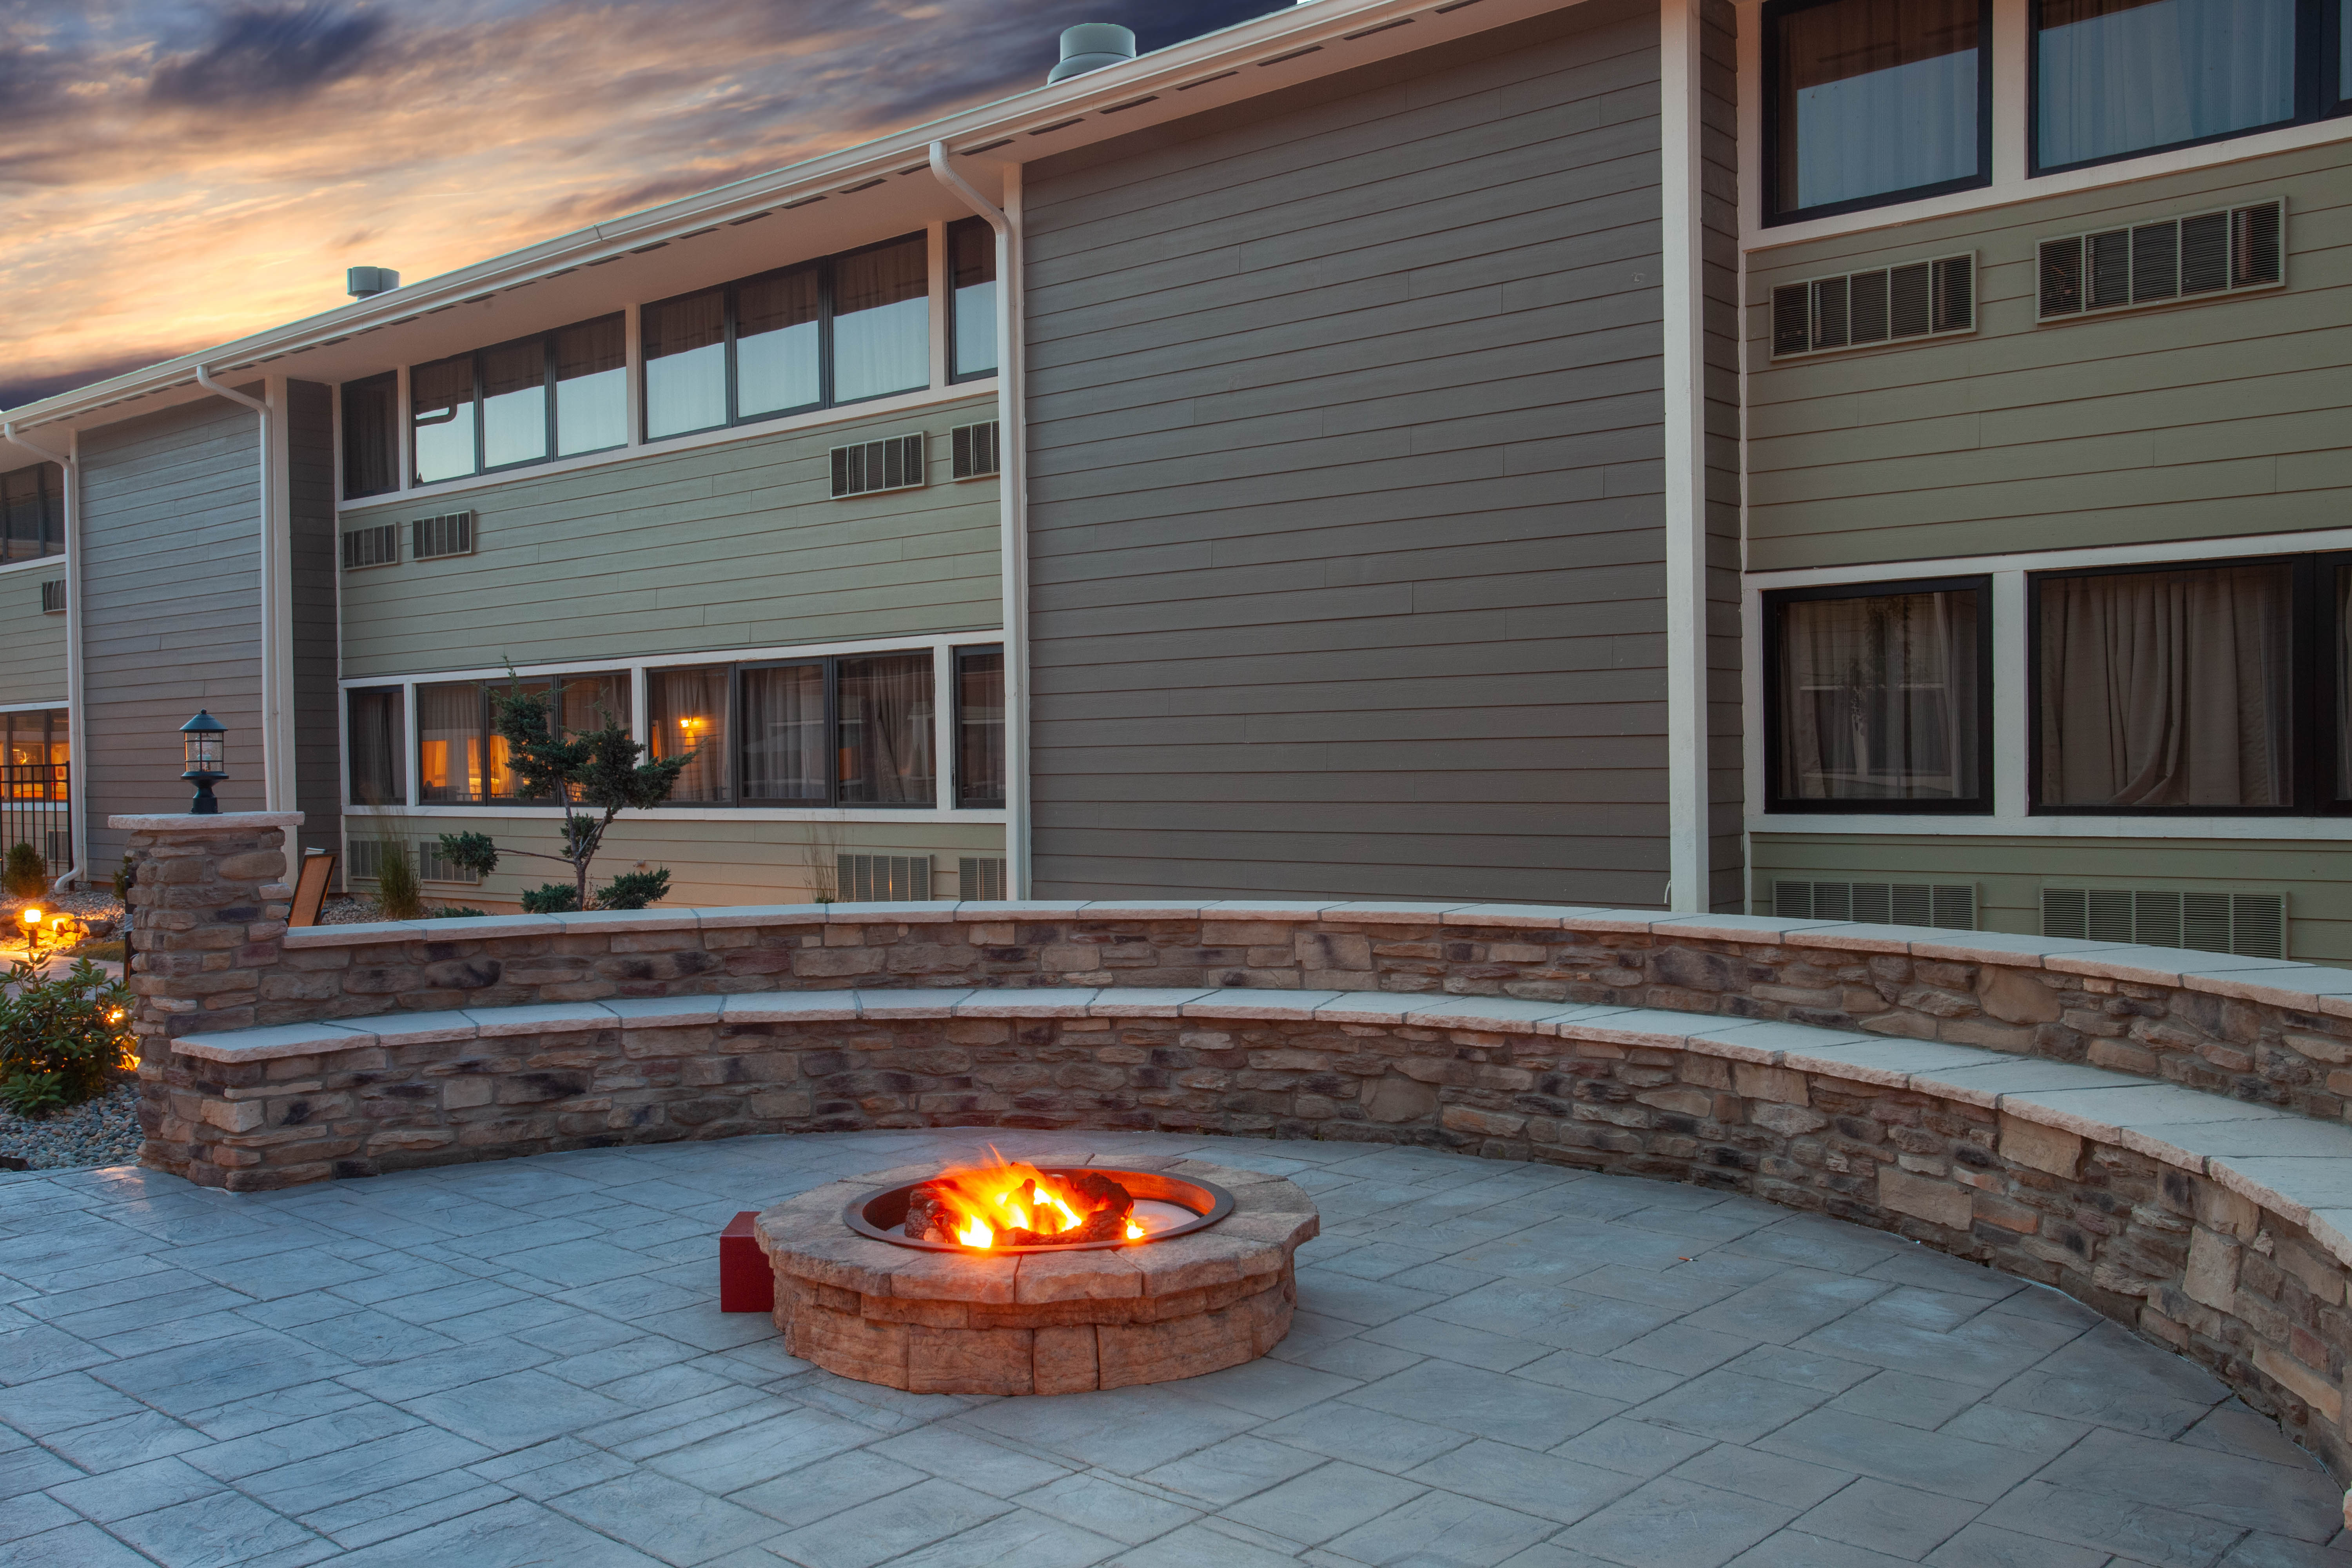 http://memorialcoliseum.com/images/Images/Where_to_Stay_Images/Wyndham_Garden/Firepit.jpg